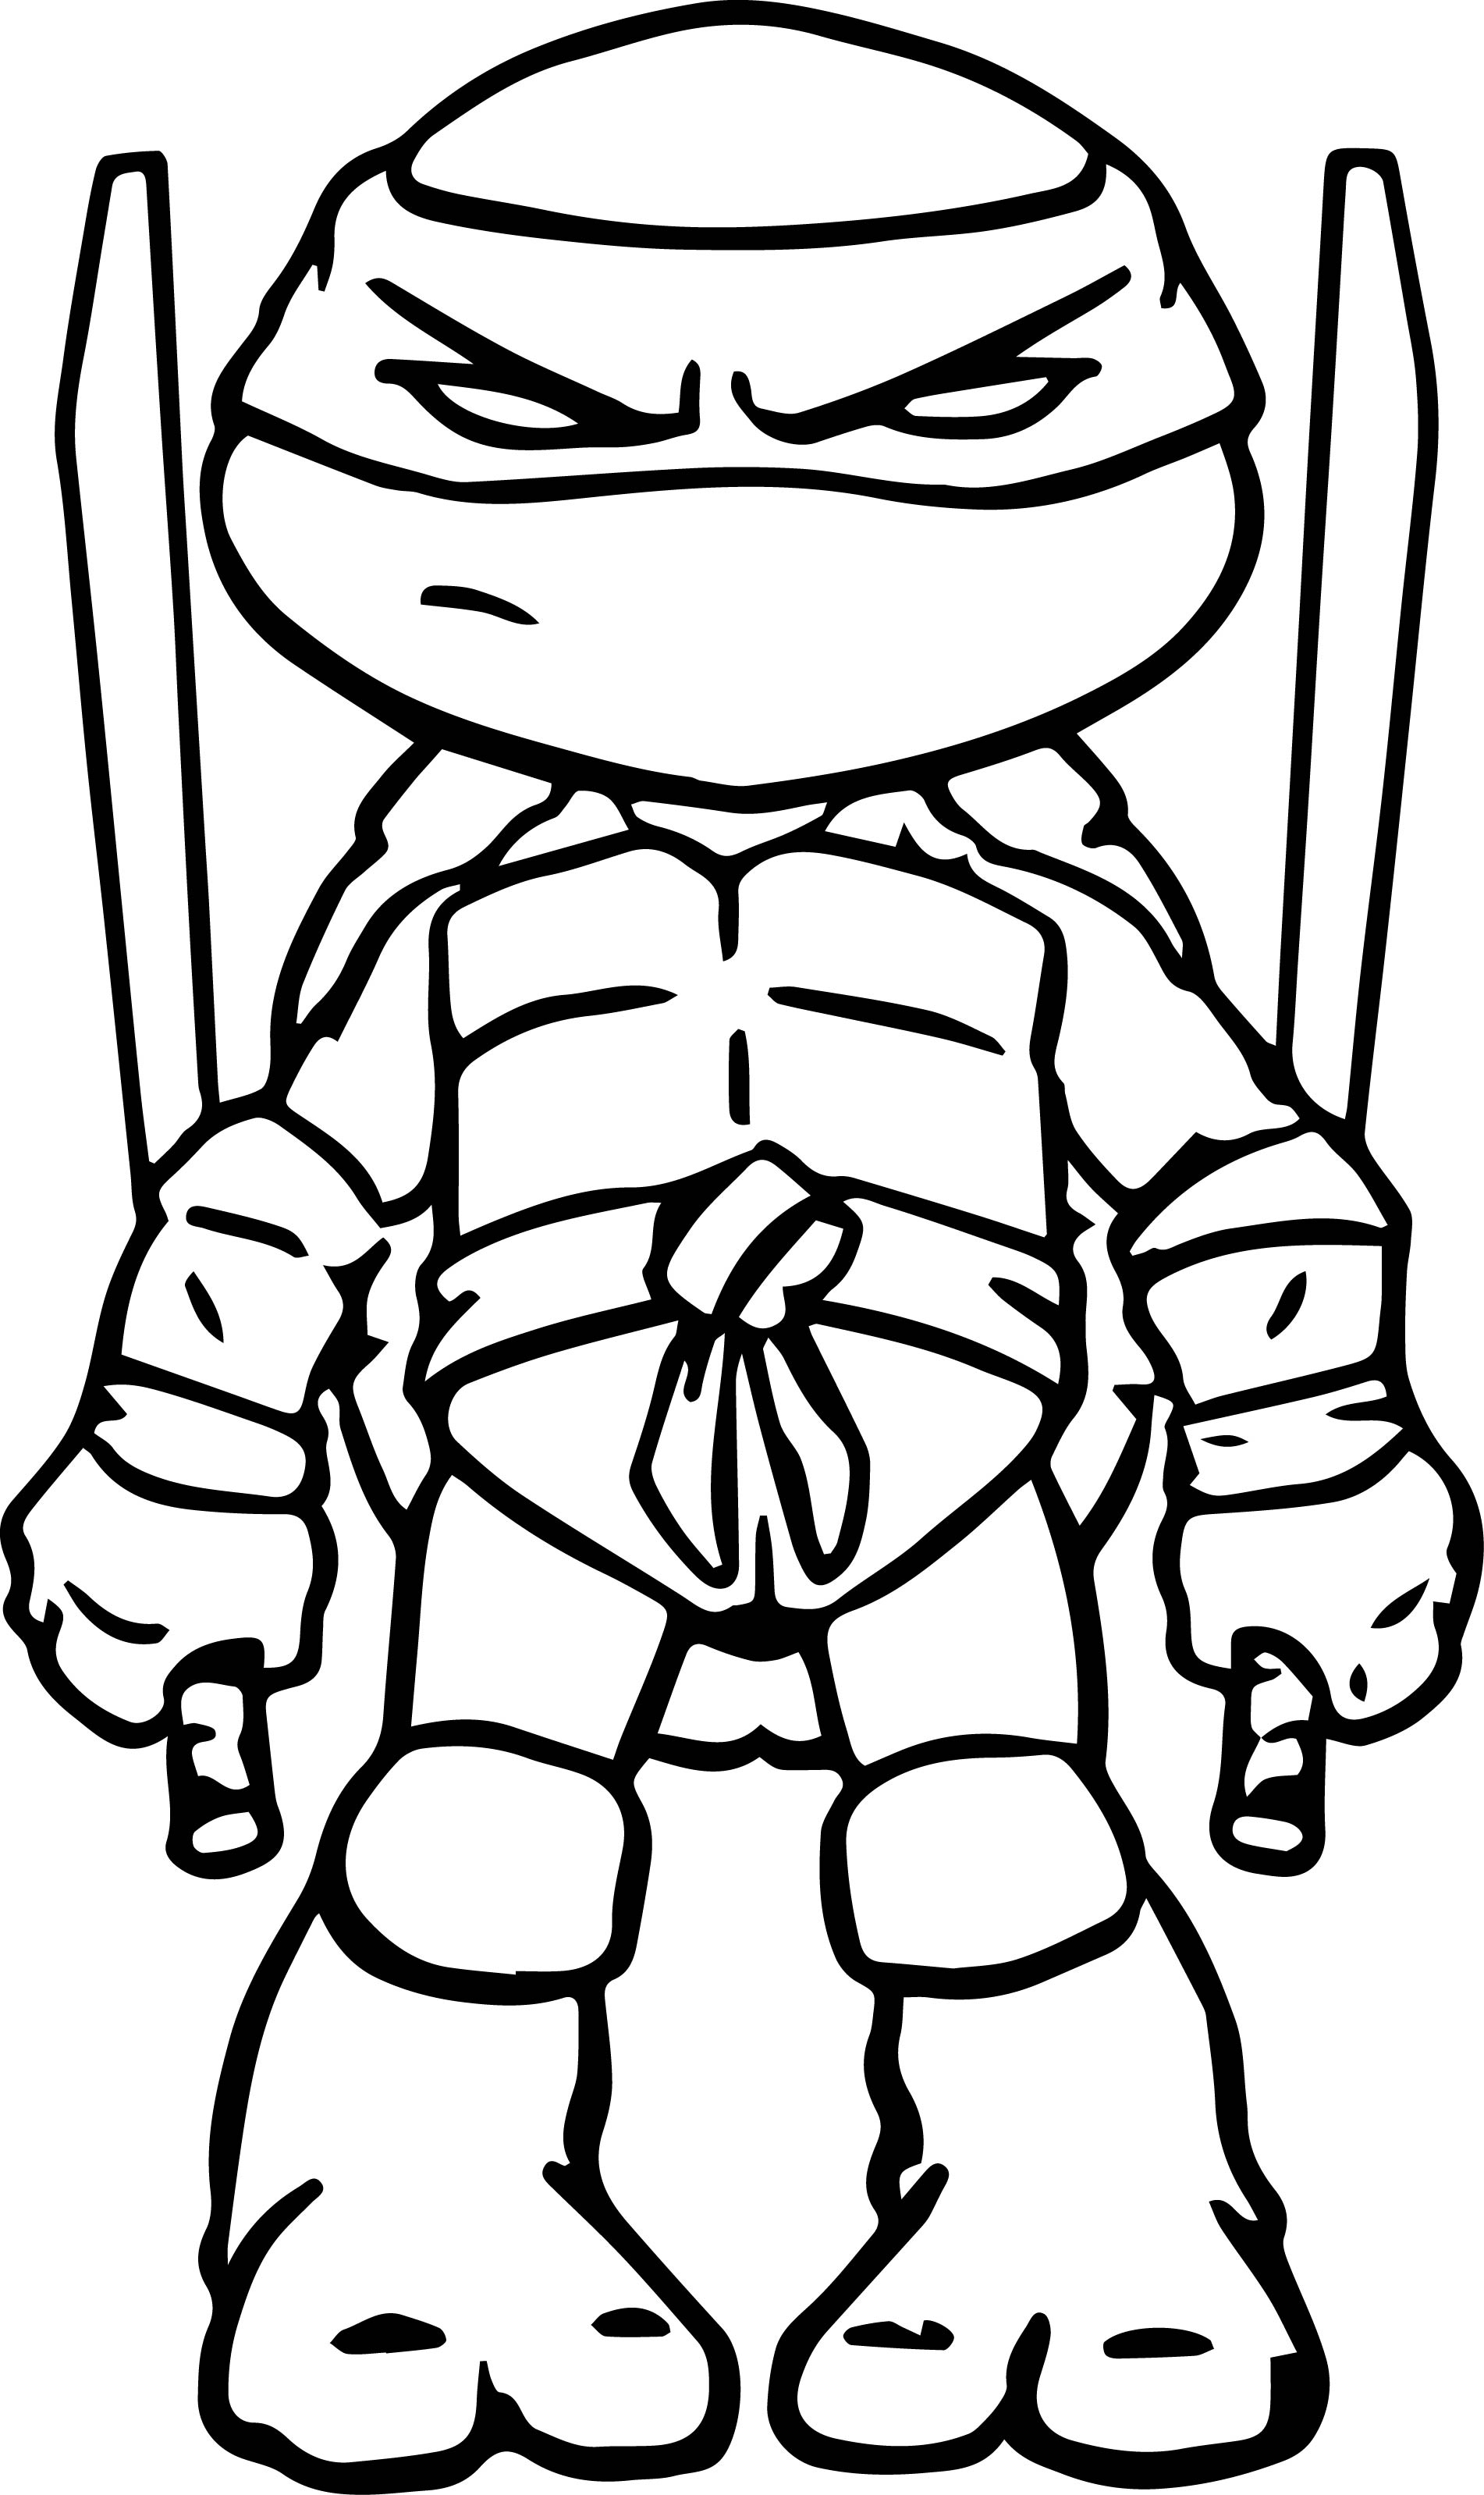 Teenage Mutant Ninja Turtle Coloring Pages Free Collection – Free ...